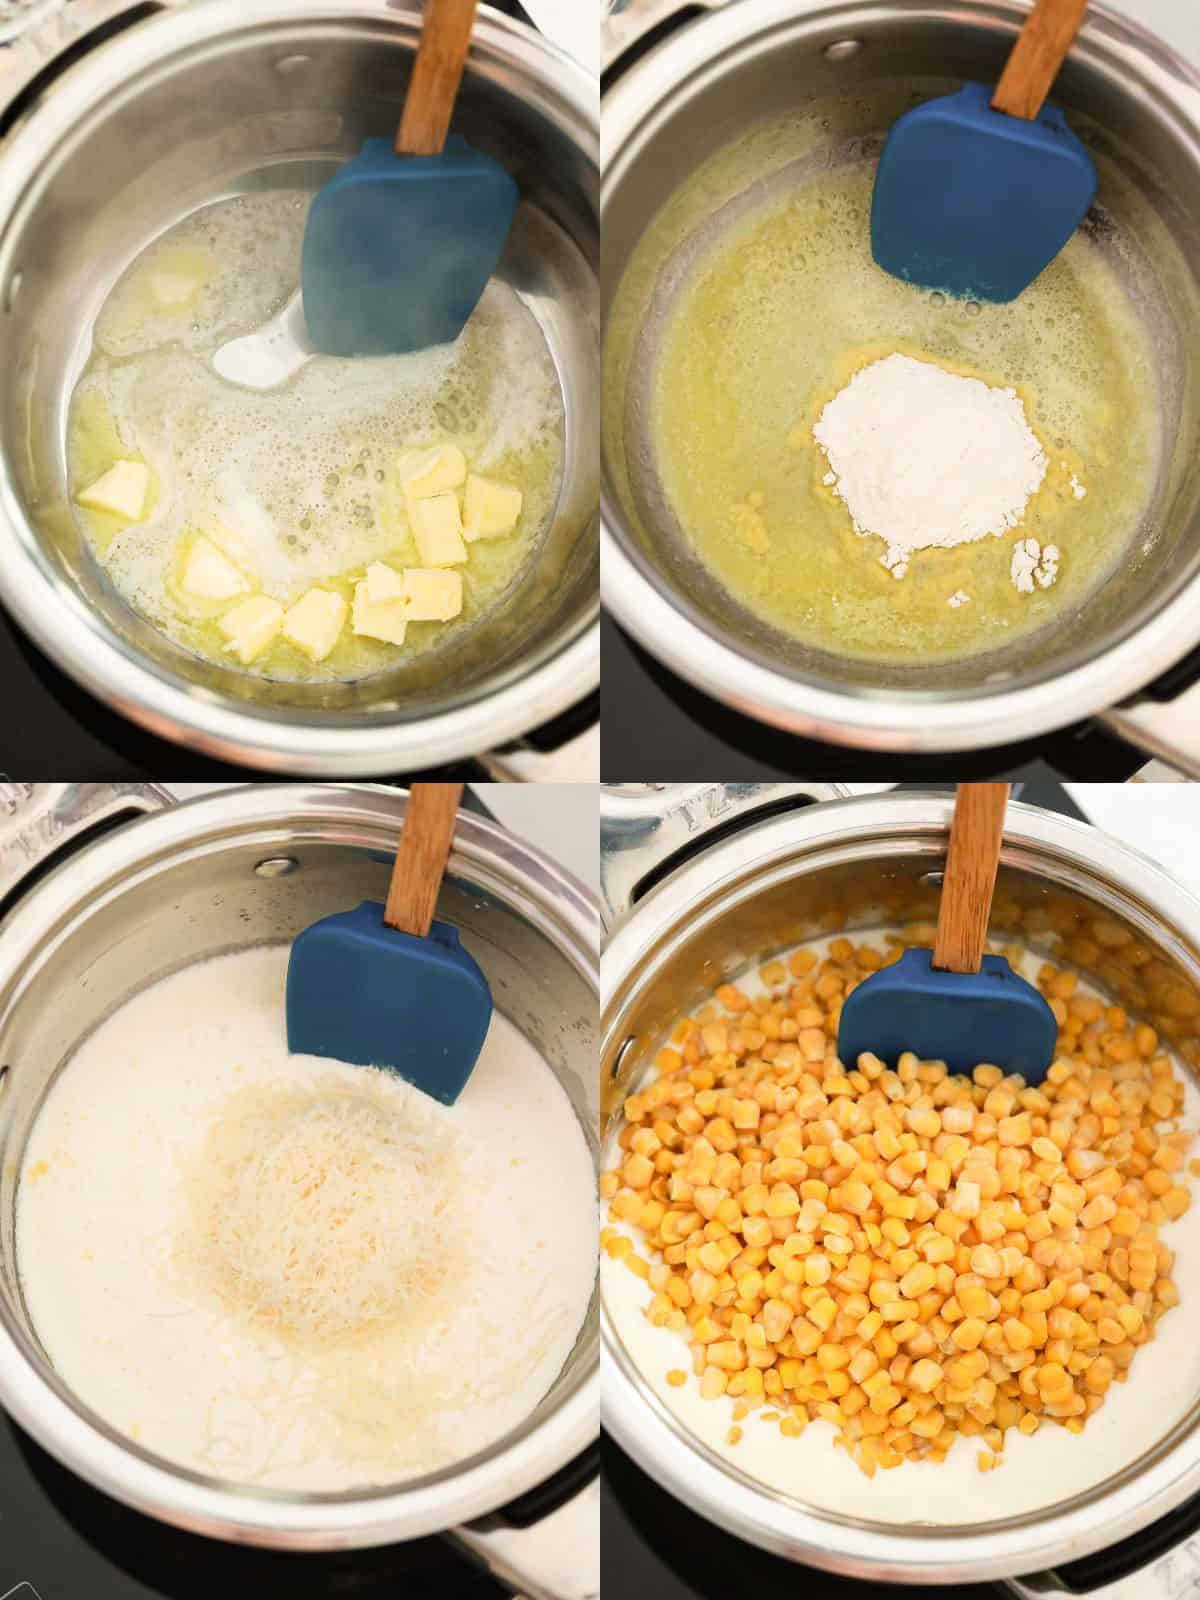 collage image showing the ingredients added to a saucepan to make creamed corn